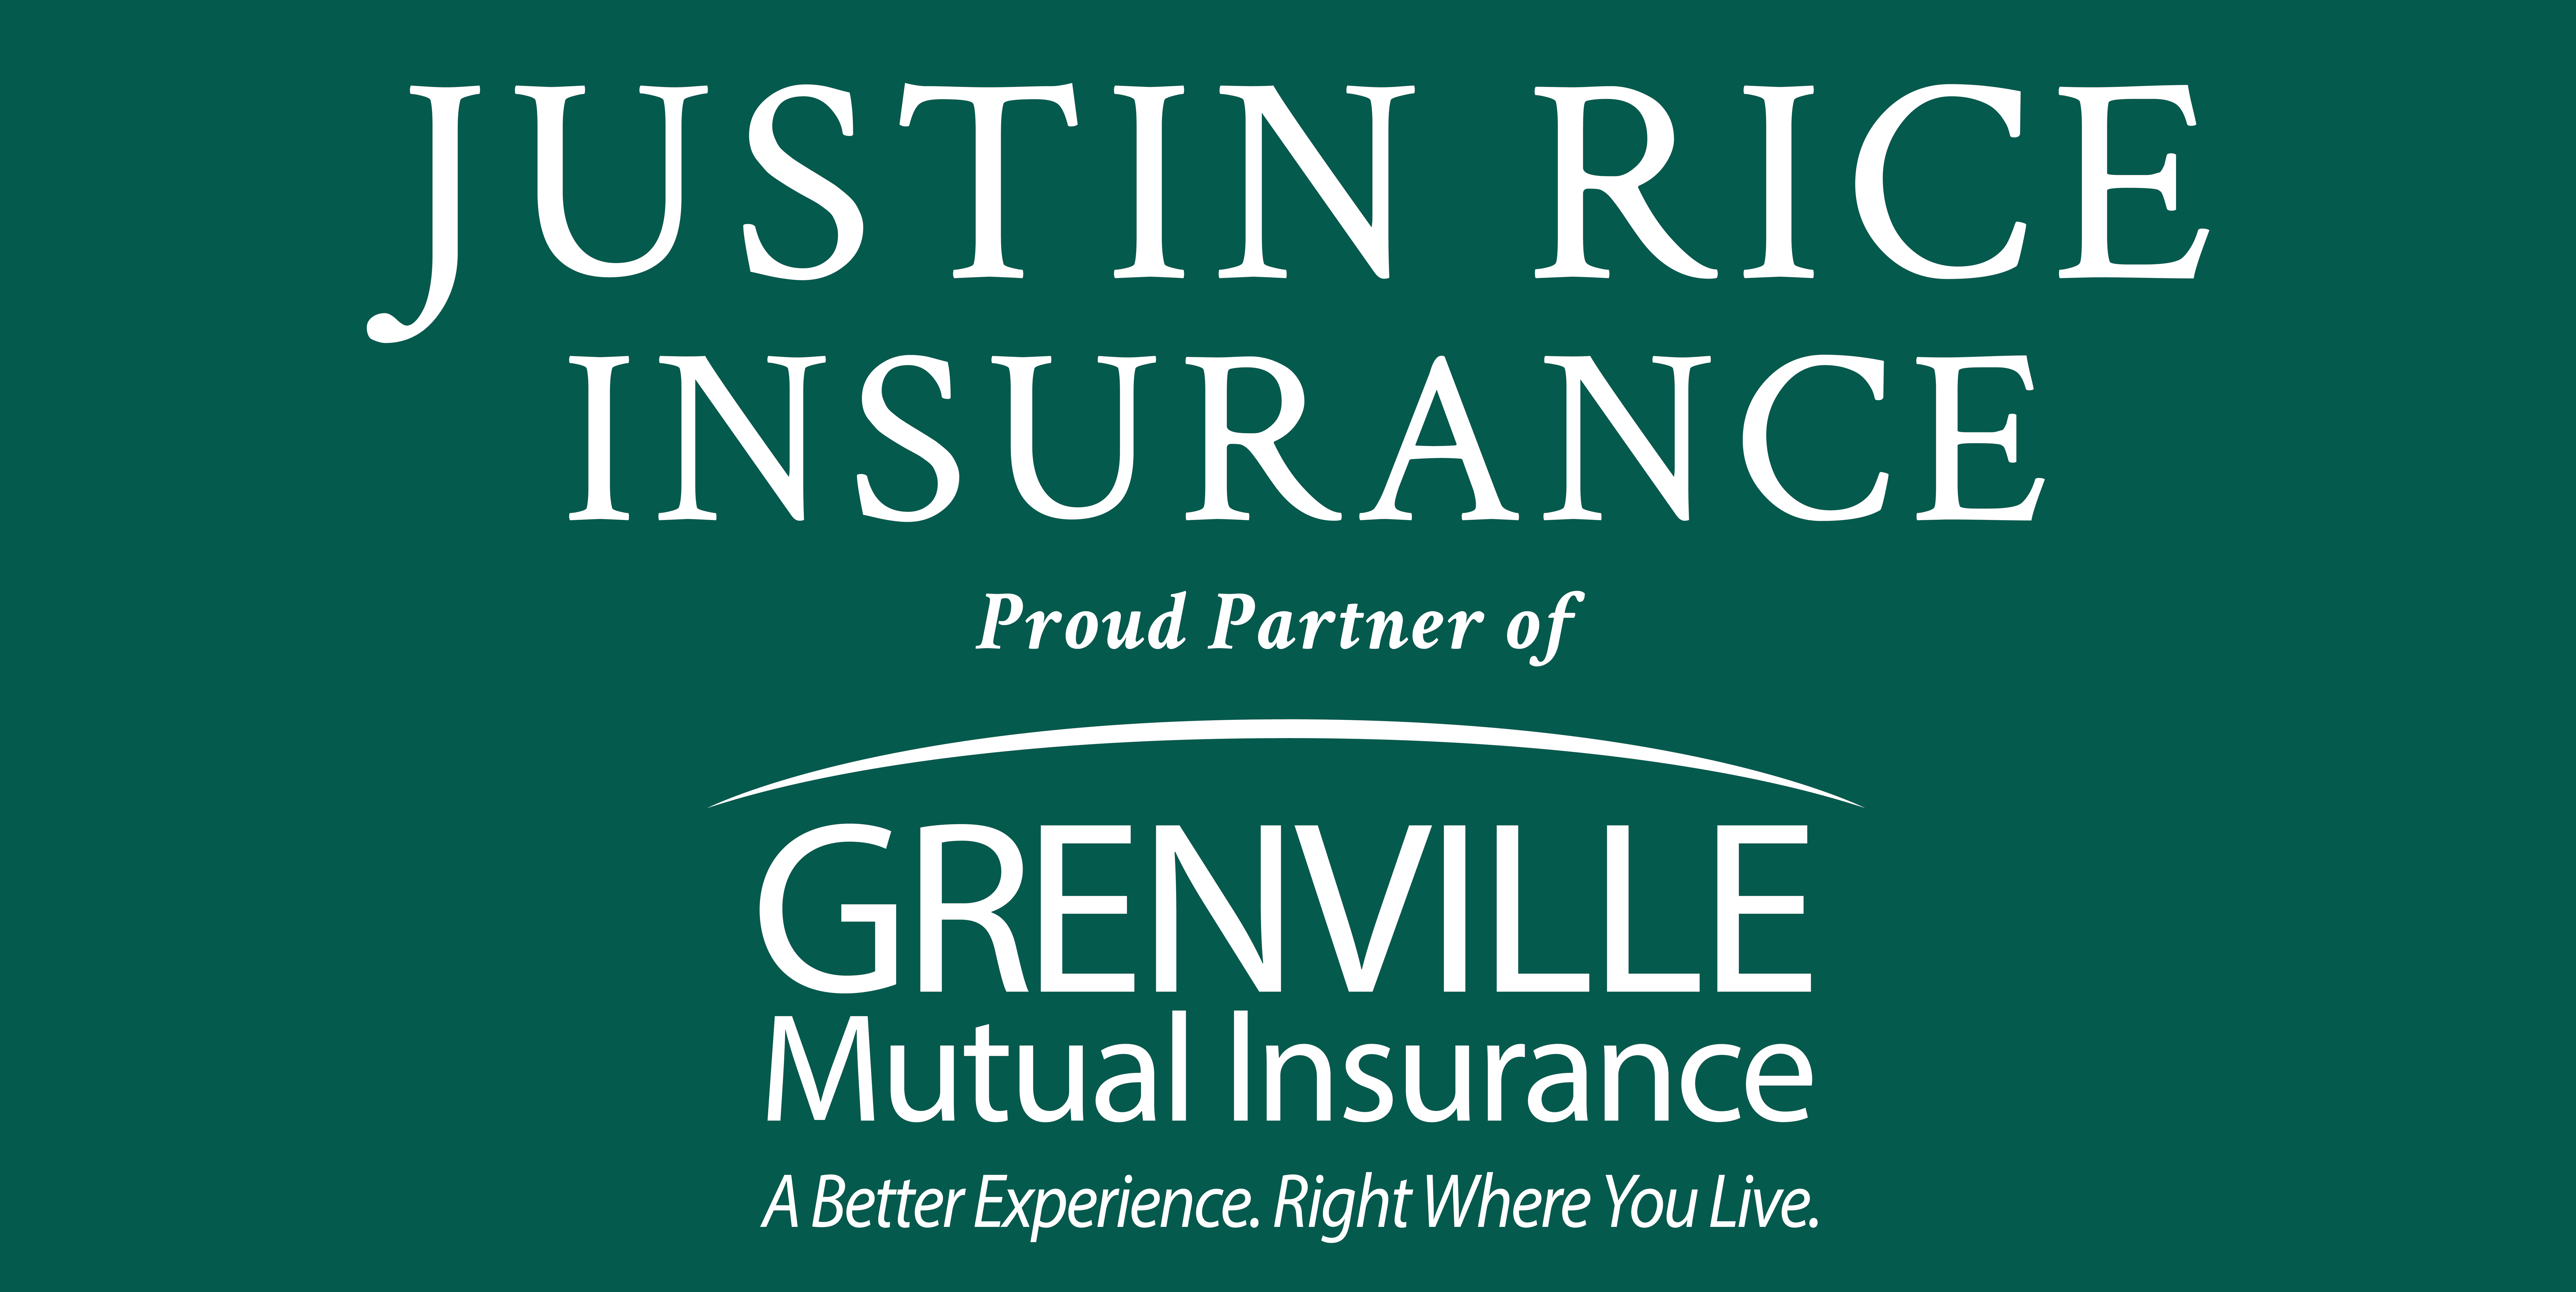 Justin Rice Insurance